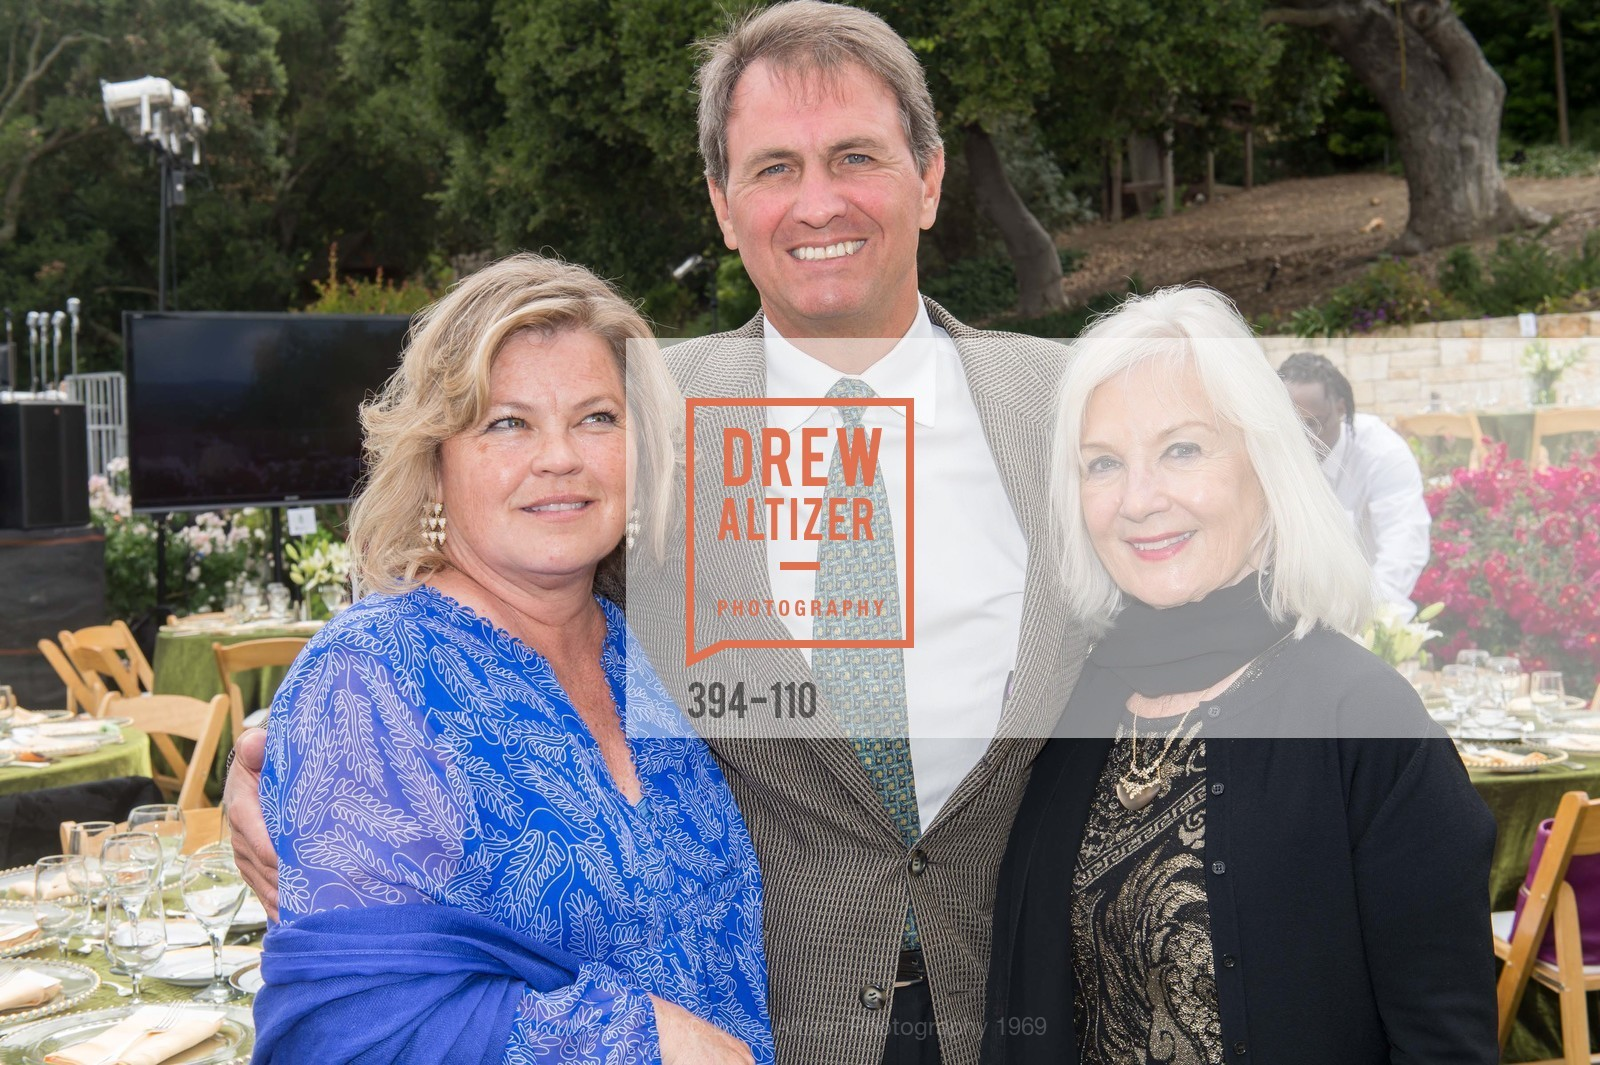 Linda Giampa, Laird Cagan, Arlene Inch, LYME AID 2015 Benefiting the Bay Area Lyme Foundation, Private Residence, May 16th, 2015,Drew Altizer, Drew Altizer Photography, full-service agency, private events, San Francisco photographer, photographer california